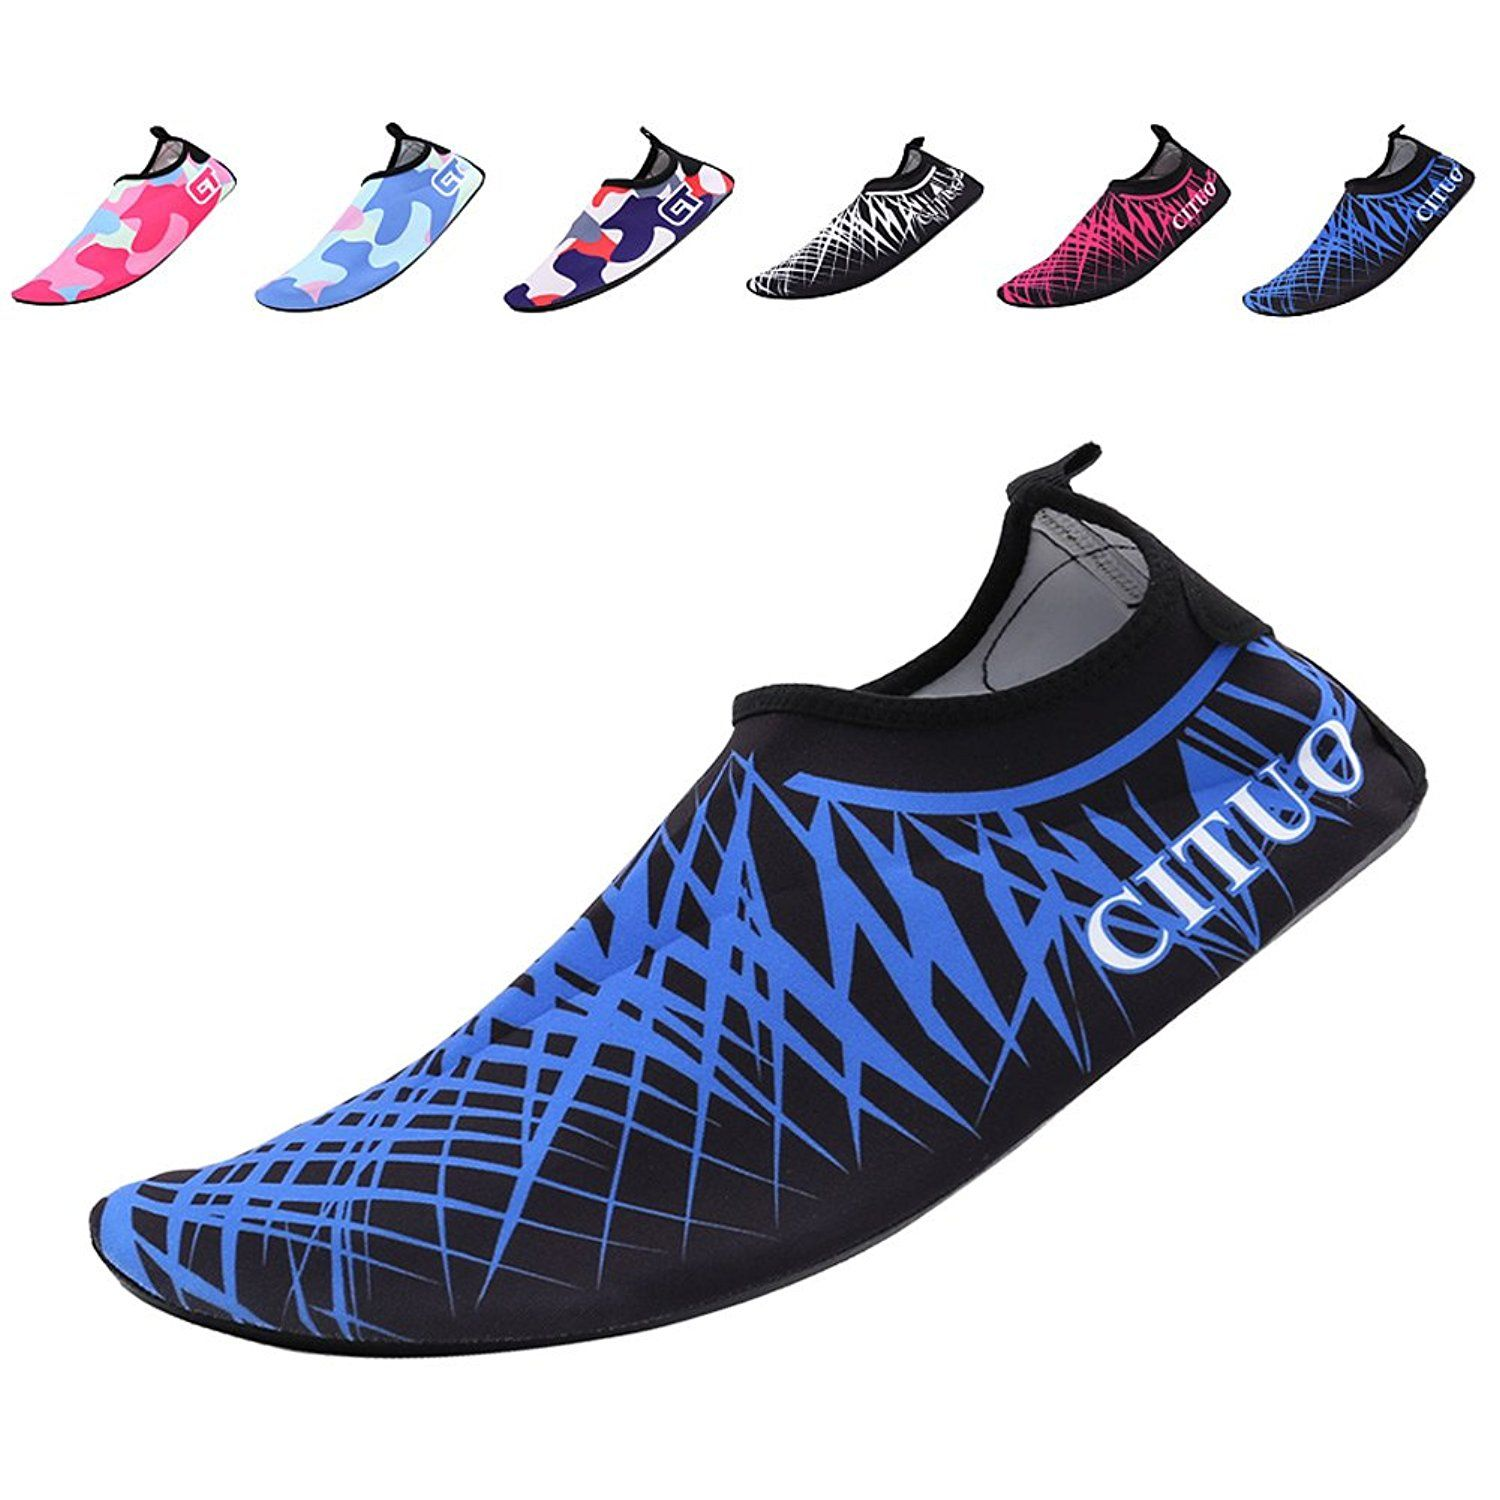 Unisex Lightweight Aqua Socks Quick-Dry Water Shoes